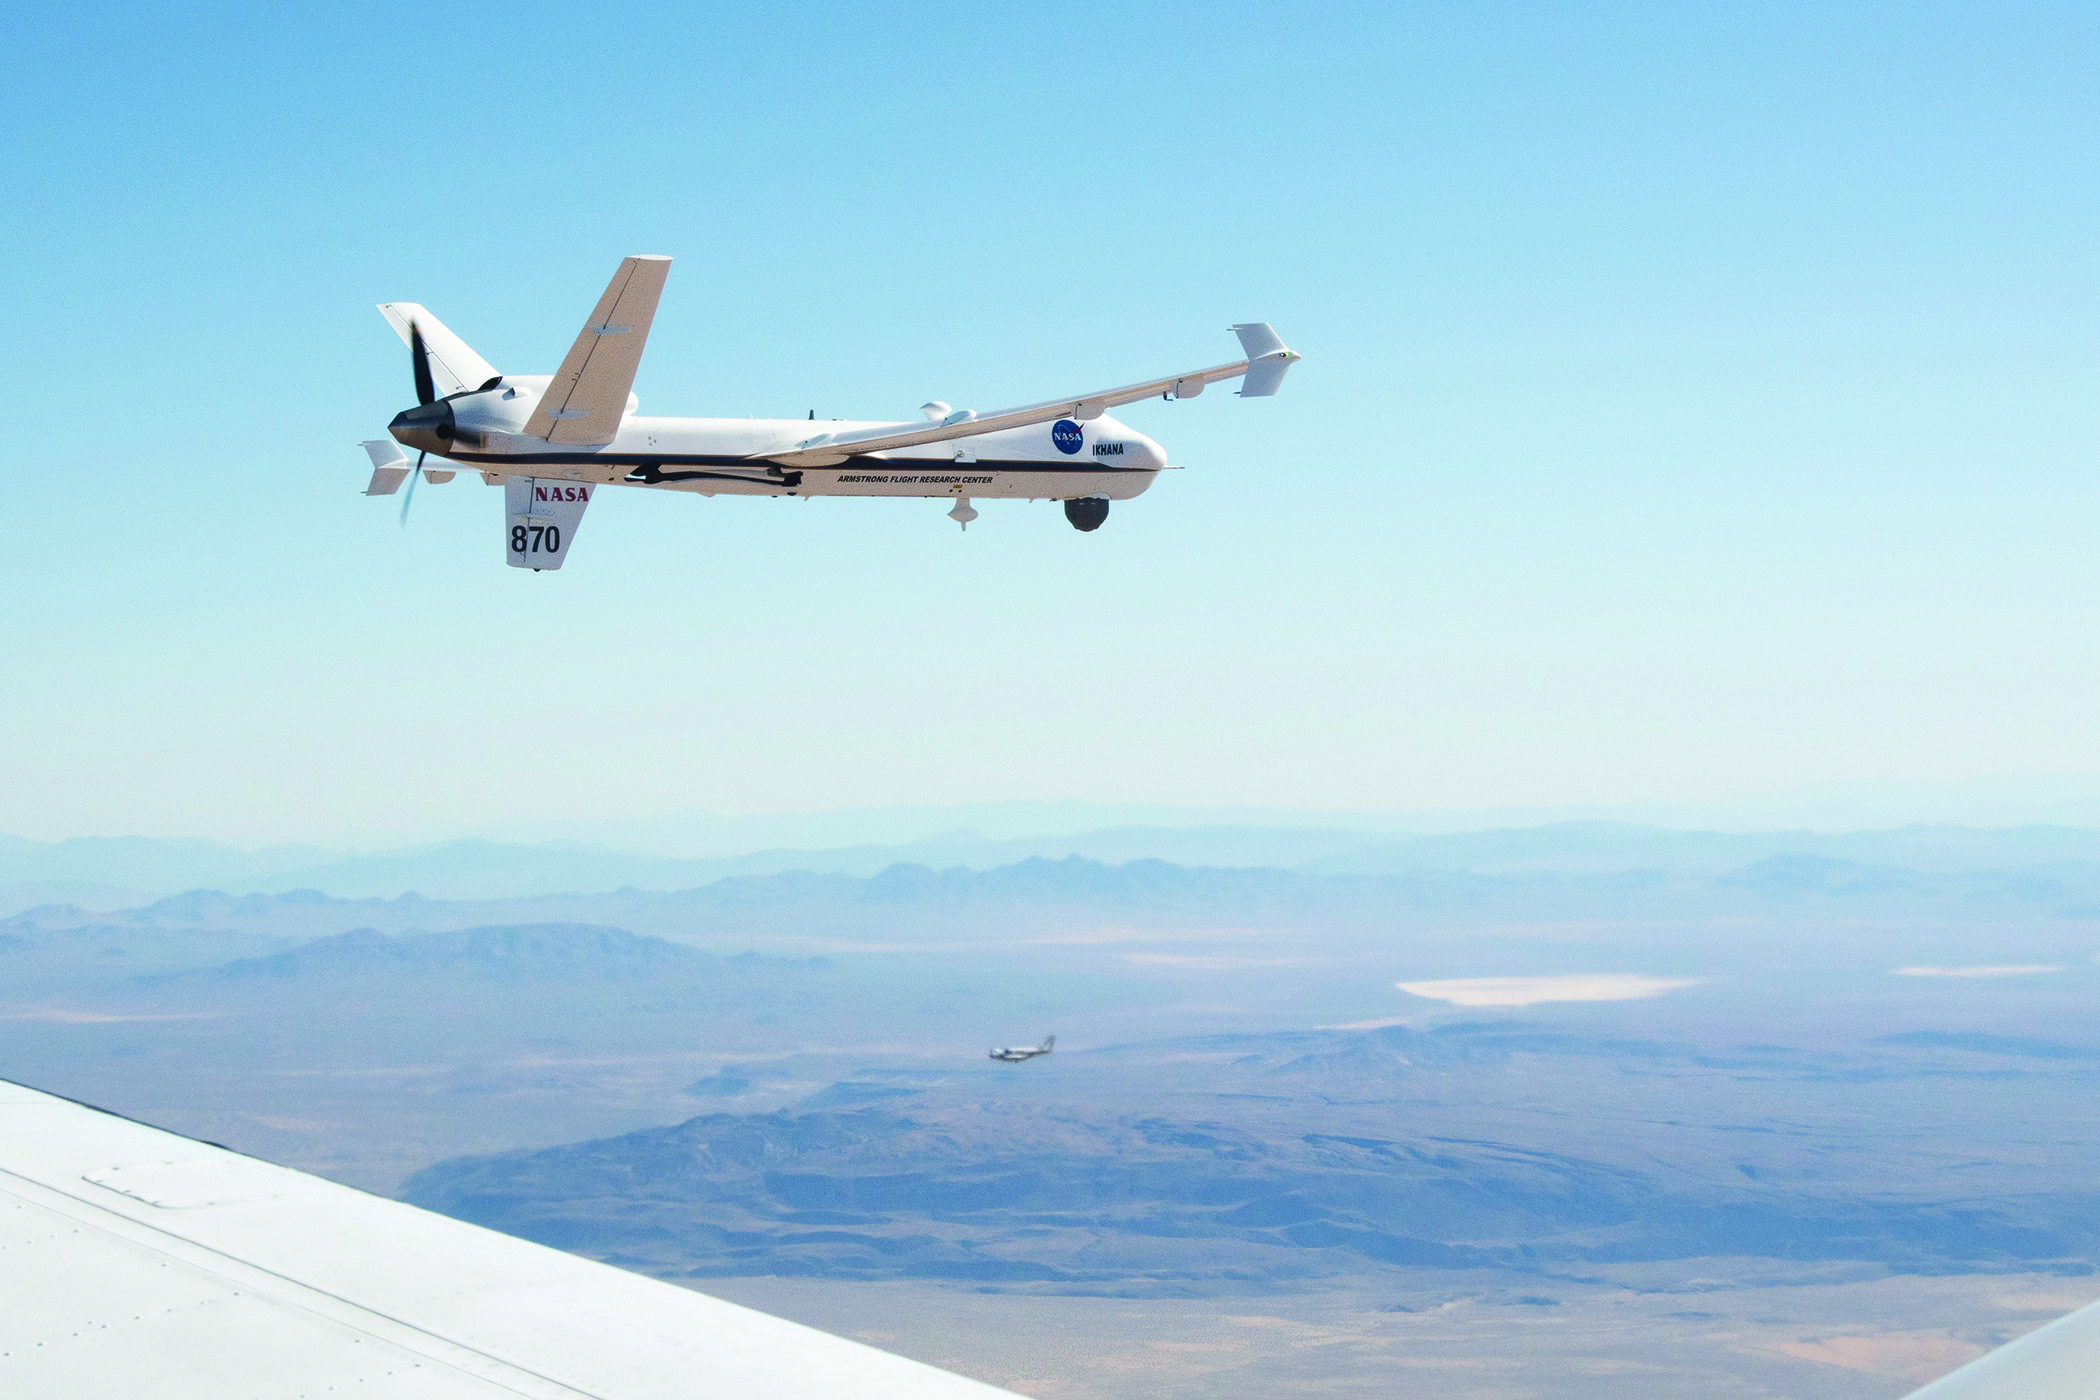 Unmanned Aircraft Systems Integration In The National Airspace System Aircraft Fighter Jets Nasa